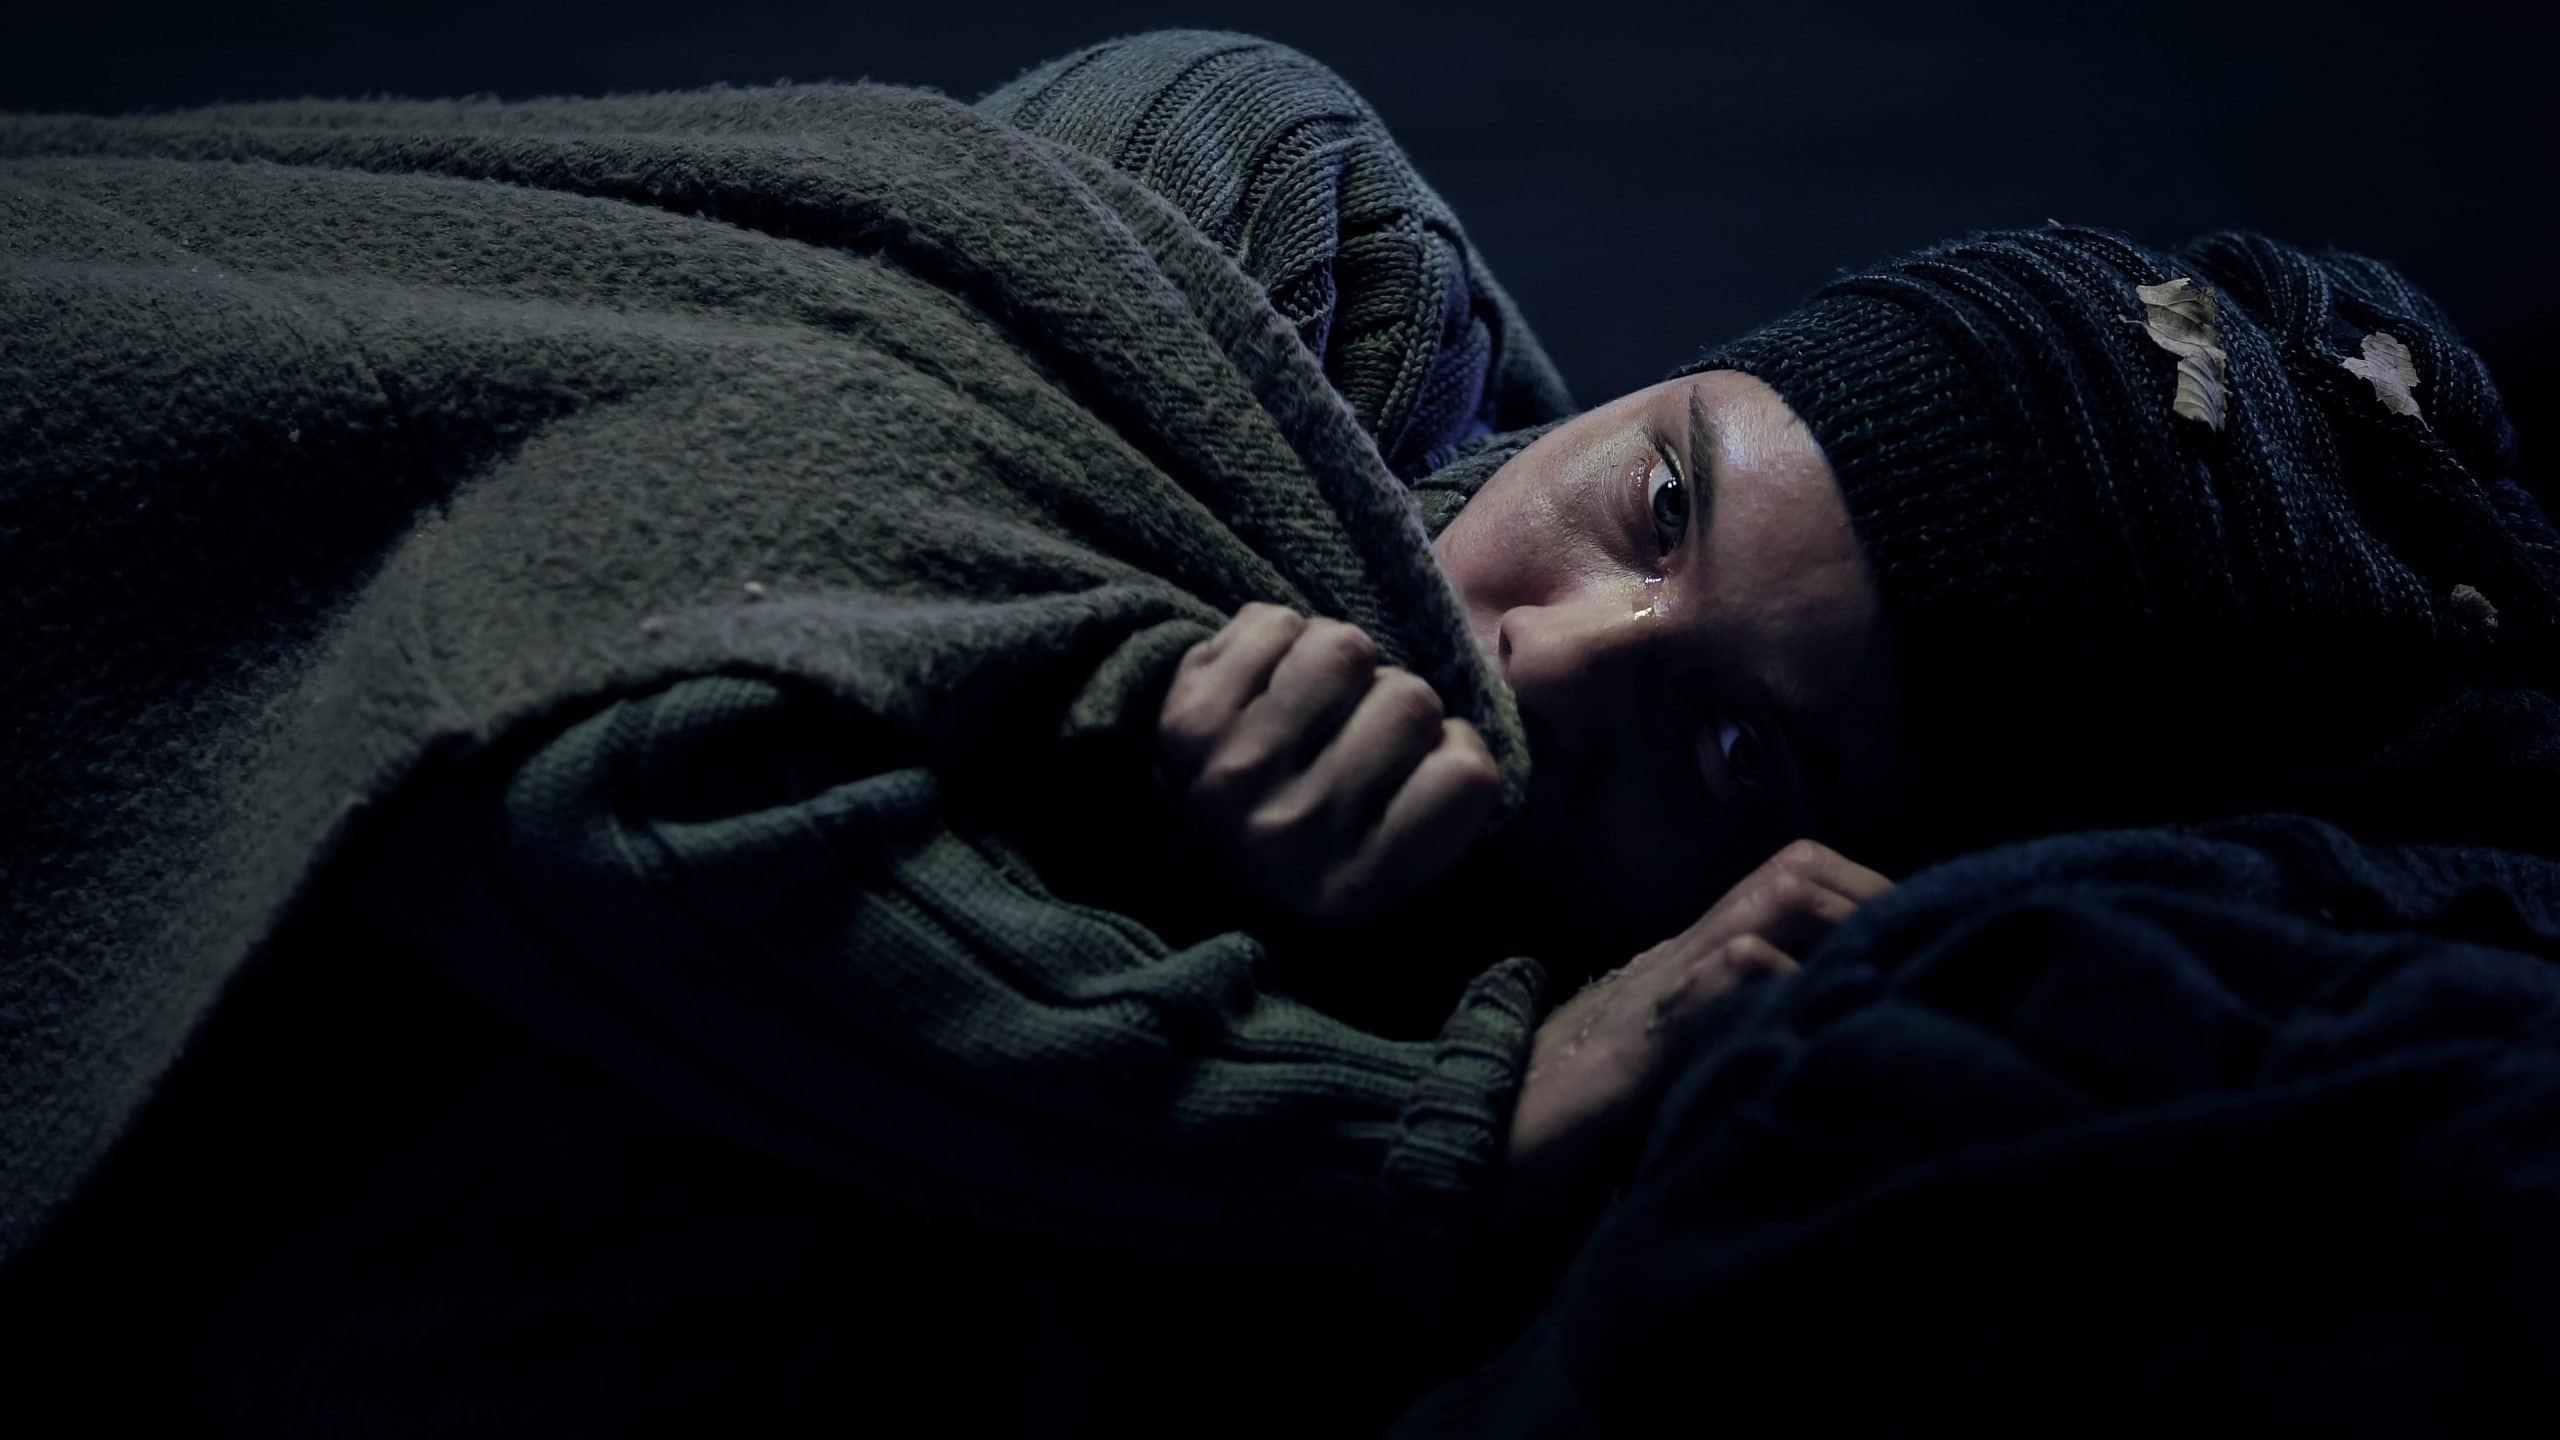 A homeless woman sleeping outdoors during the pandemic